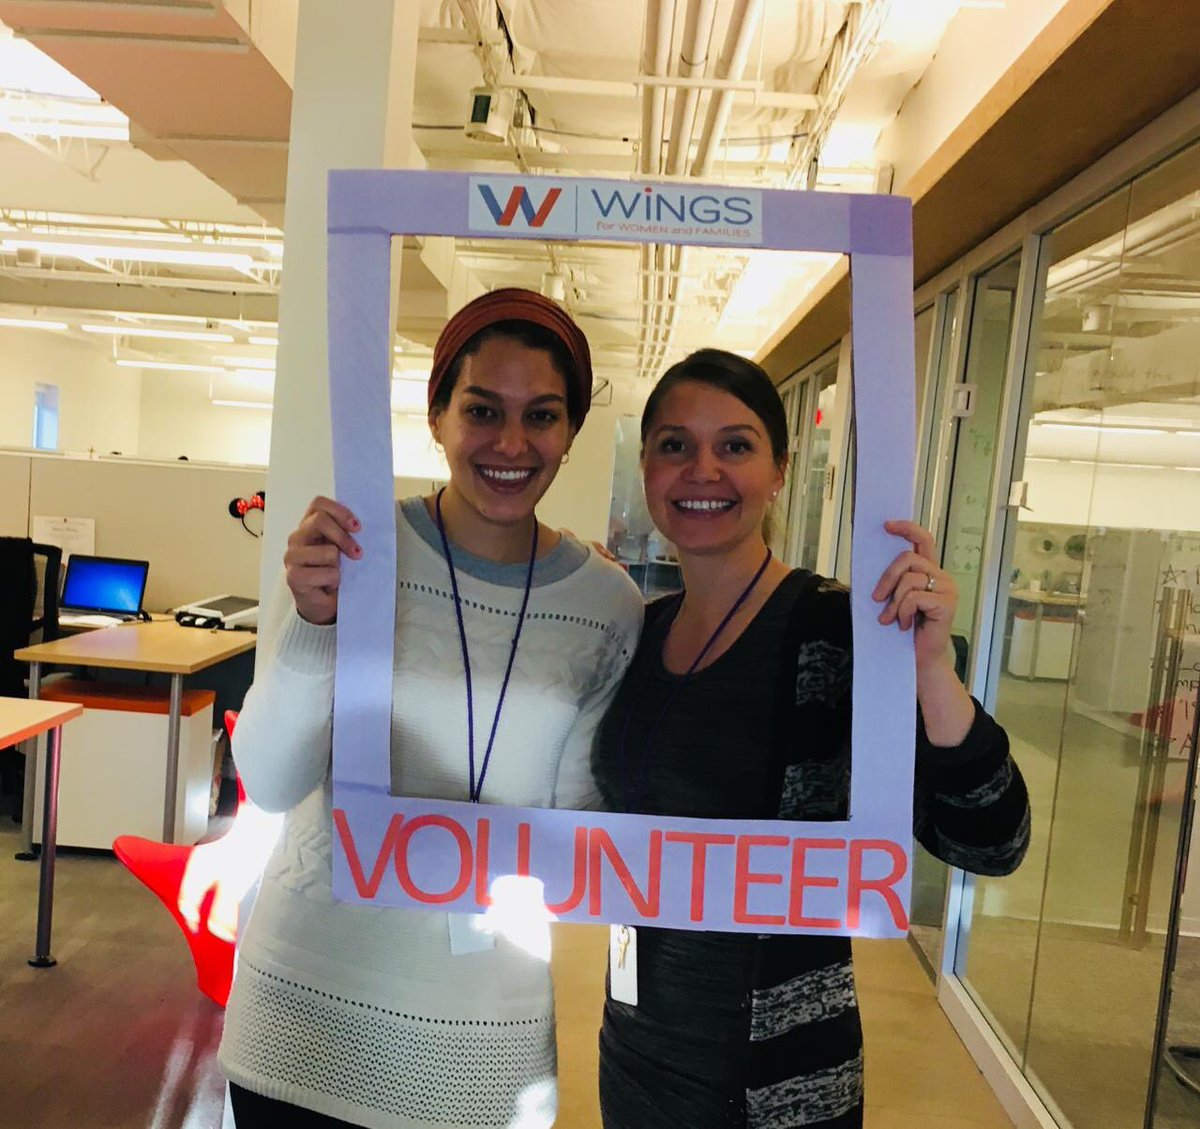 test Twitter Media - Make volunteering one of your New Year's Resolutions! WiNGS has opportunities for Small Business Experts, Financial Coaches, Outreach Specialists, WiNGS Ambassadors and much more. Connect today! volunteer@wingsdallas.org   #empowerwomen #fightpoverty #WiNGSVolunteers https://t.co/Ot8njU1dwN